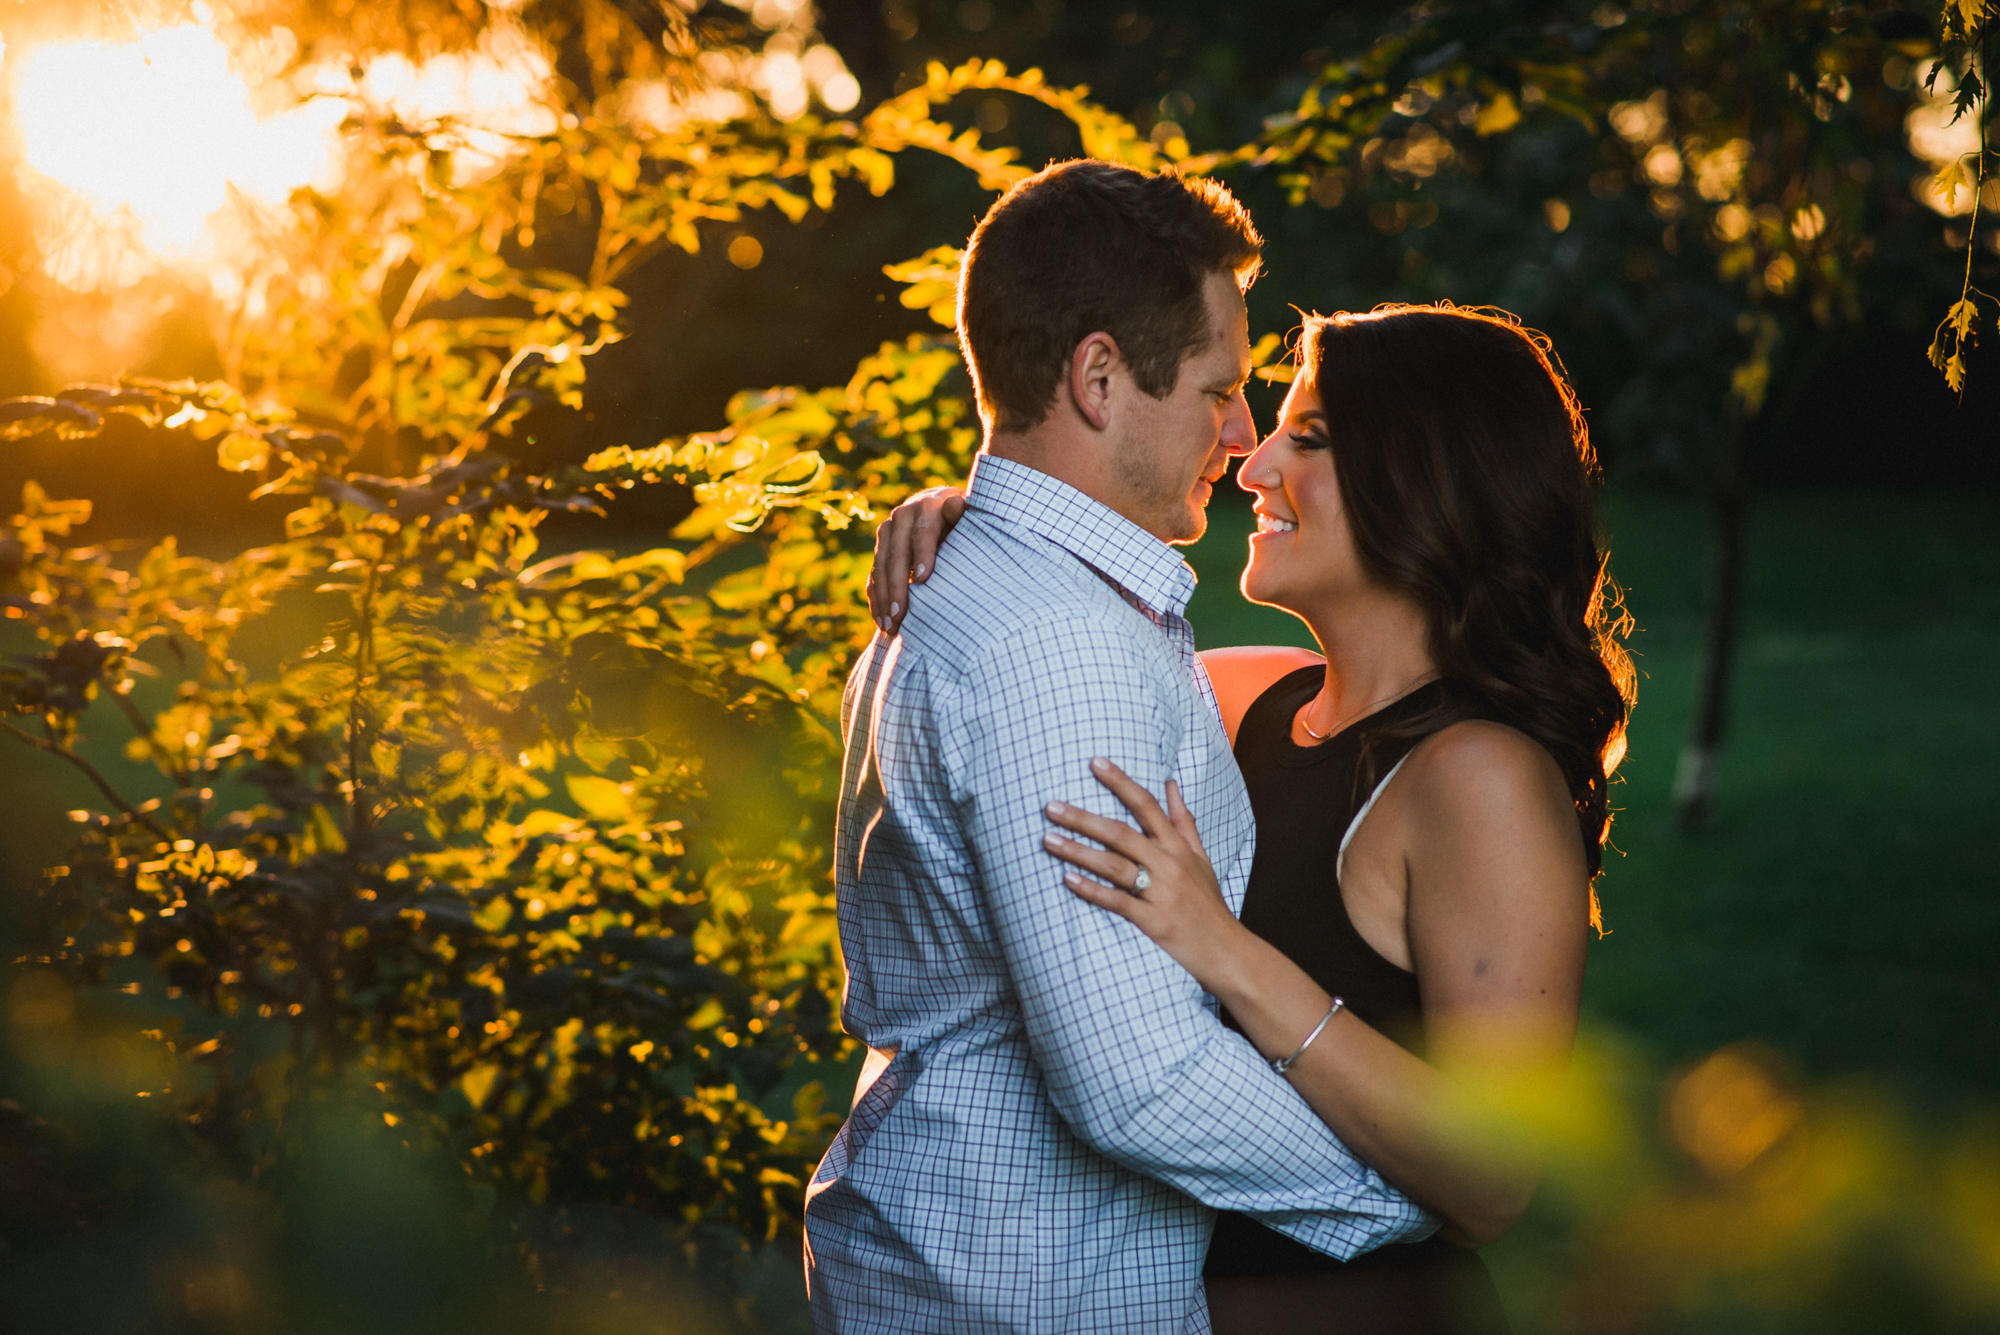 winnipeg-engagement-photographers-manitoba-couples-wedding-17